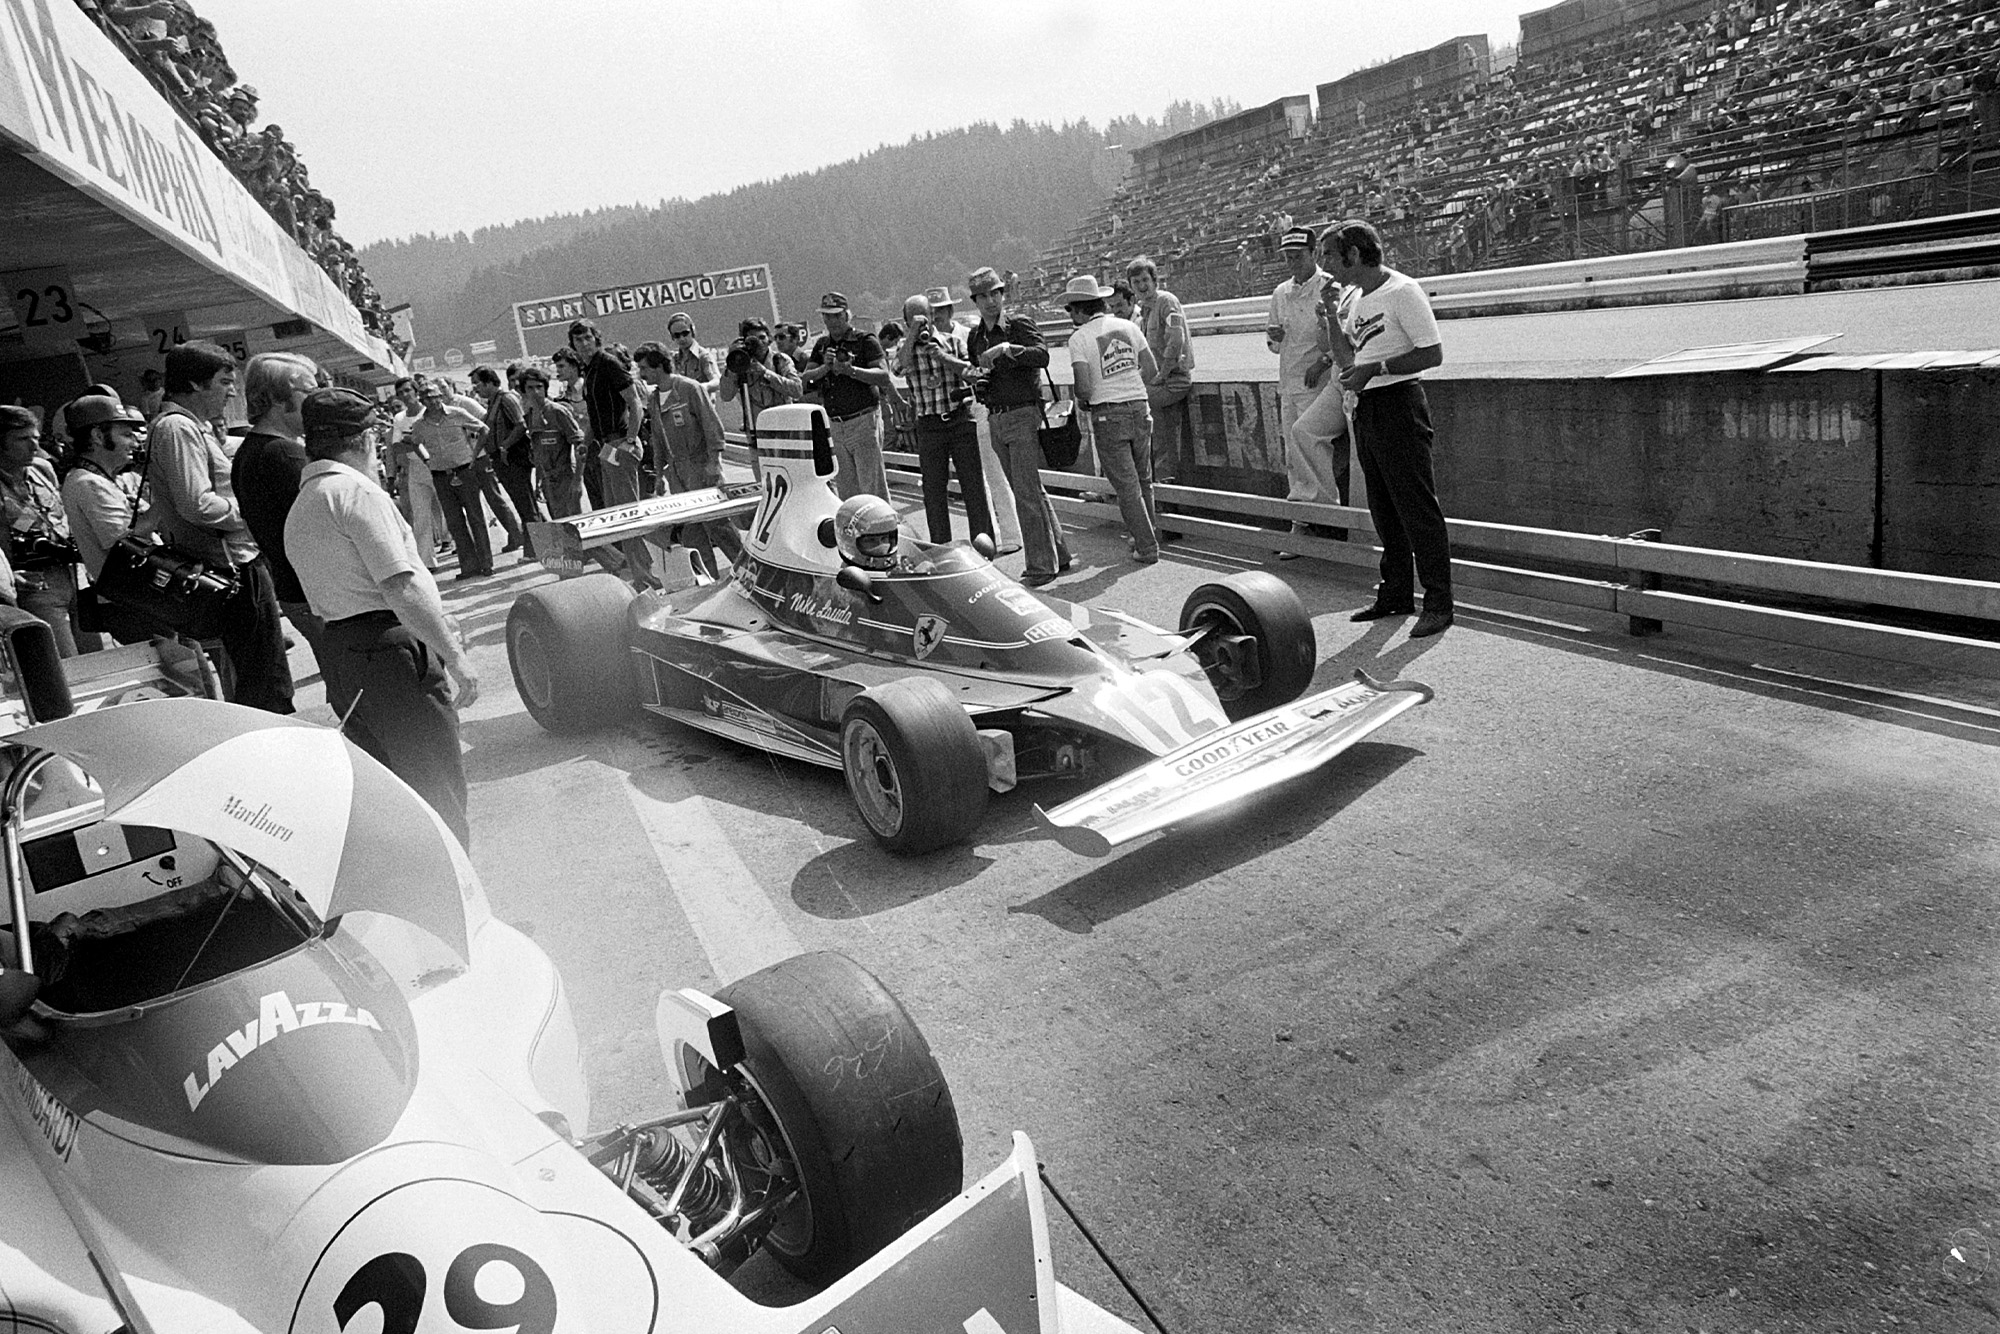 Niki Lauda pulls out of the pits in his Ferrari 312T at the 1975 Austrian Grand Prix